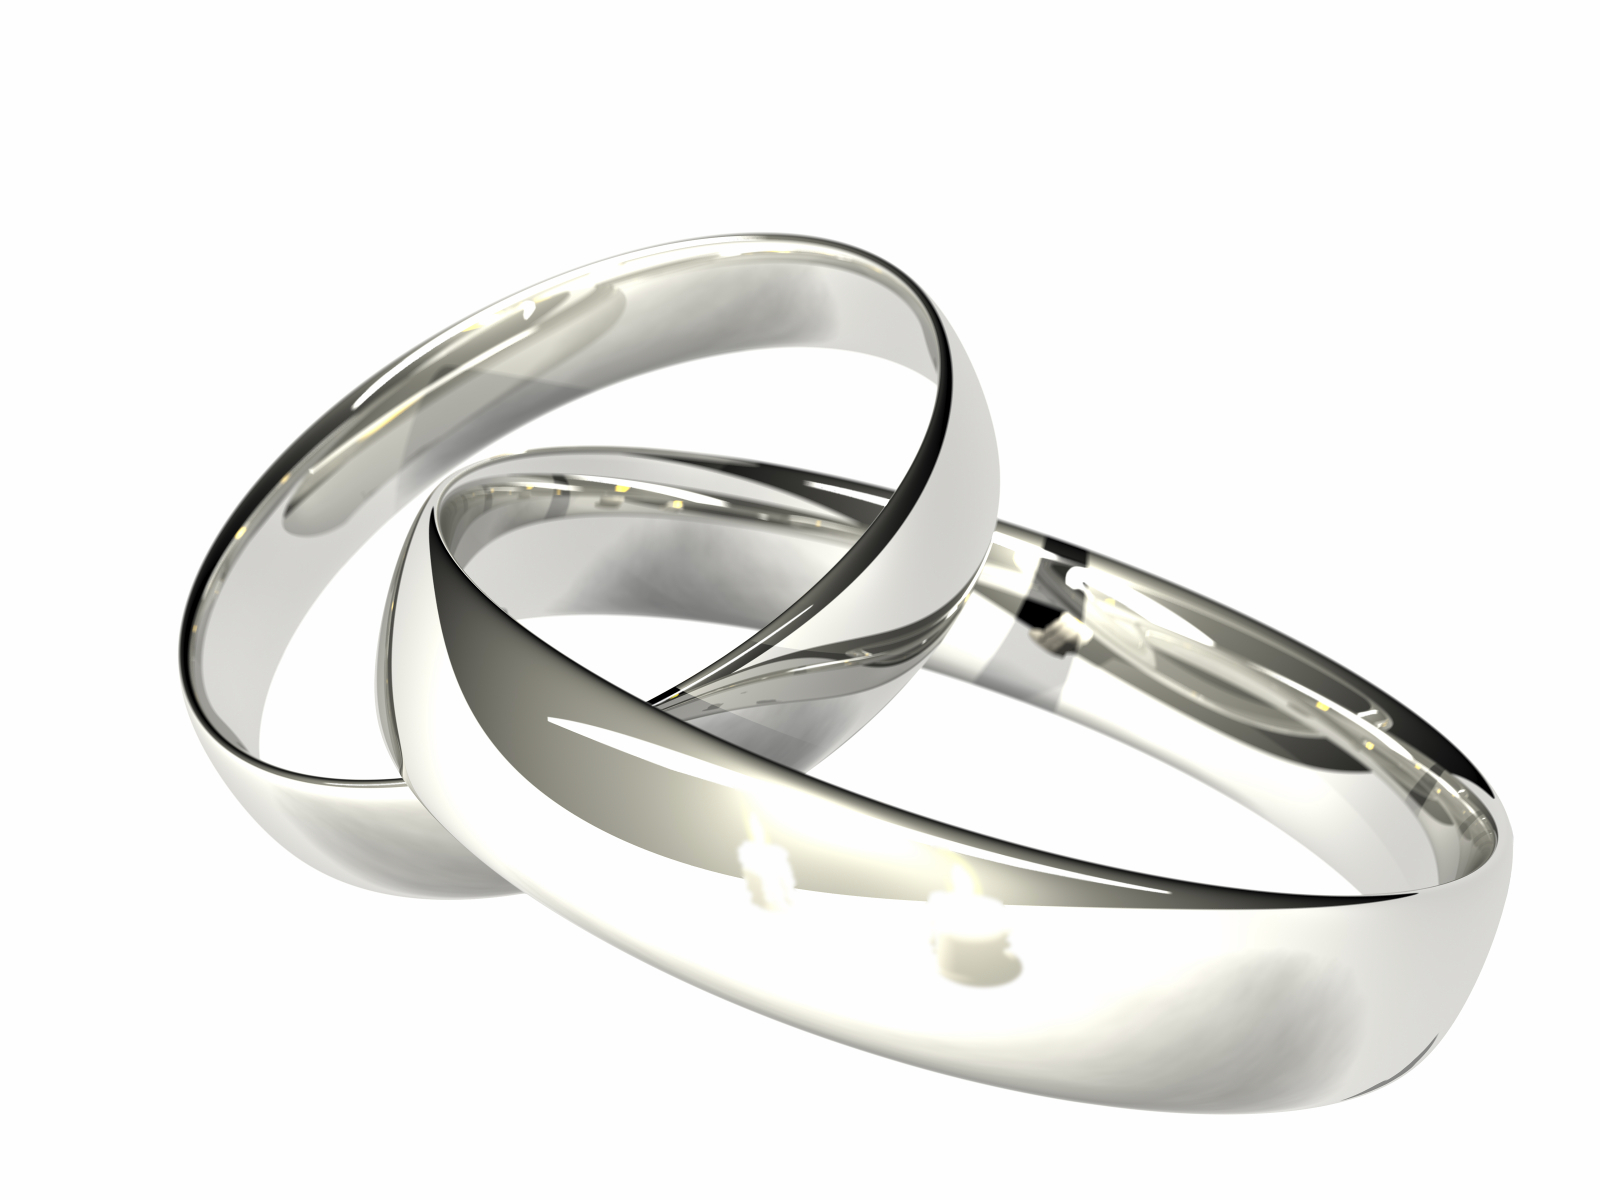 wedding rings - Silver Wedding Rings